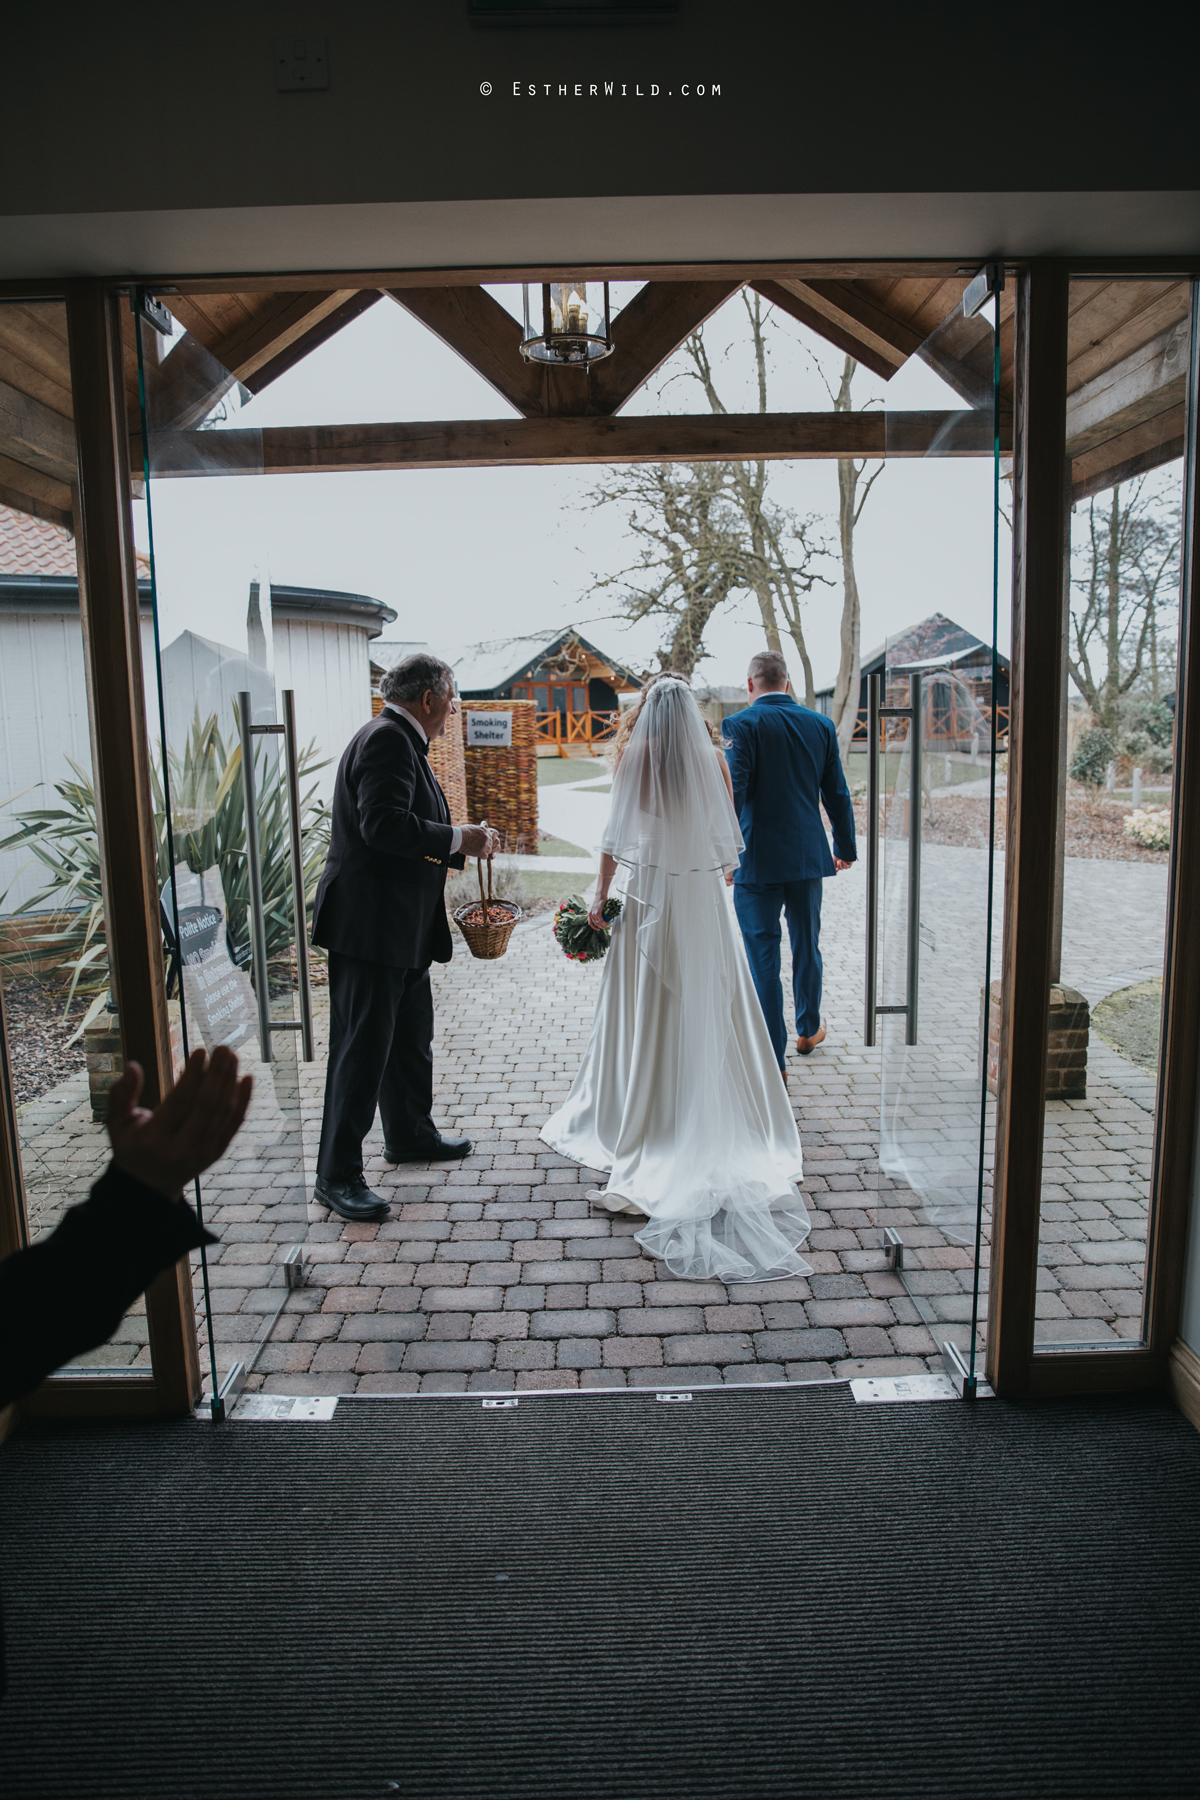 The_BoatHouse_Wedding_Venue_Ormesby_Norfolk_Broads_Boat_Wedding_Photography_Esther_Wild_Photographer_IMG_1383.jpg